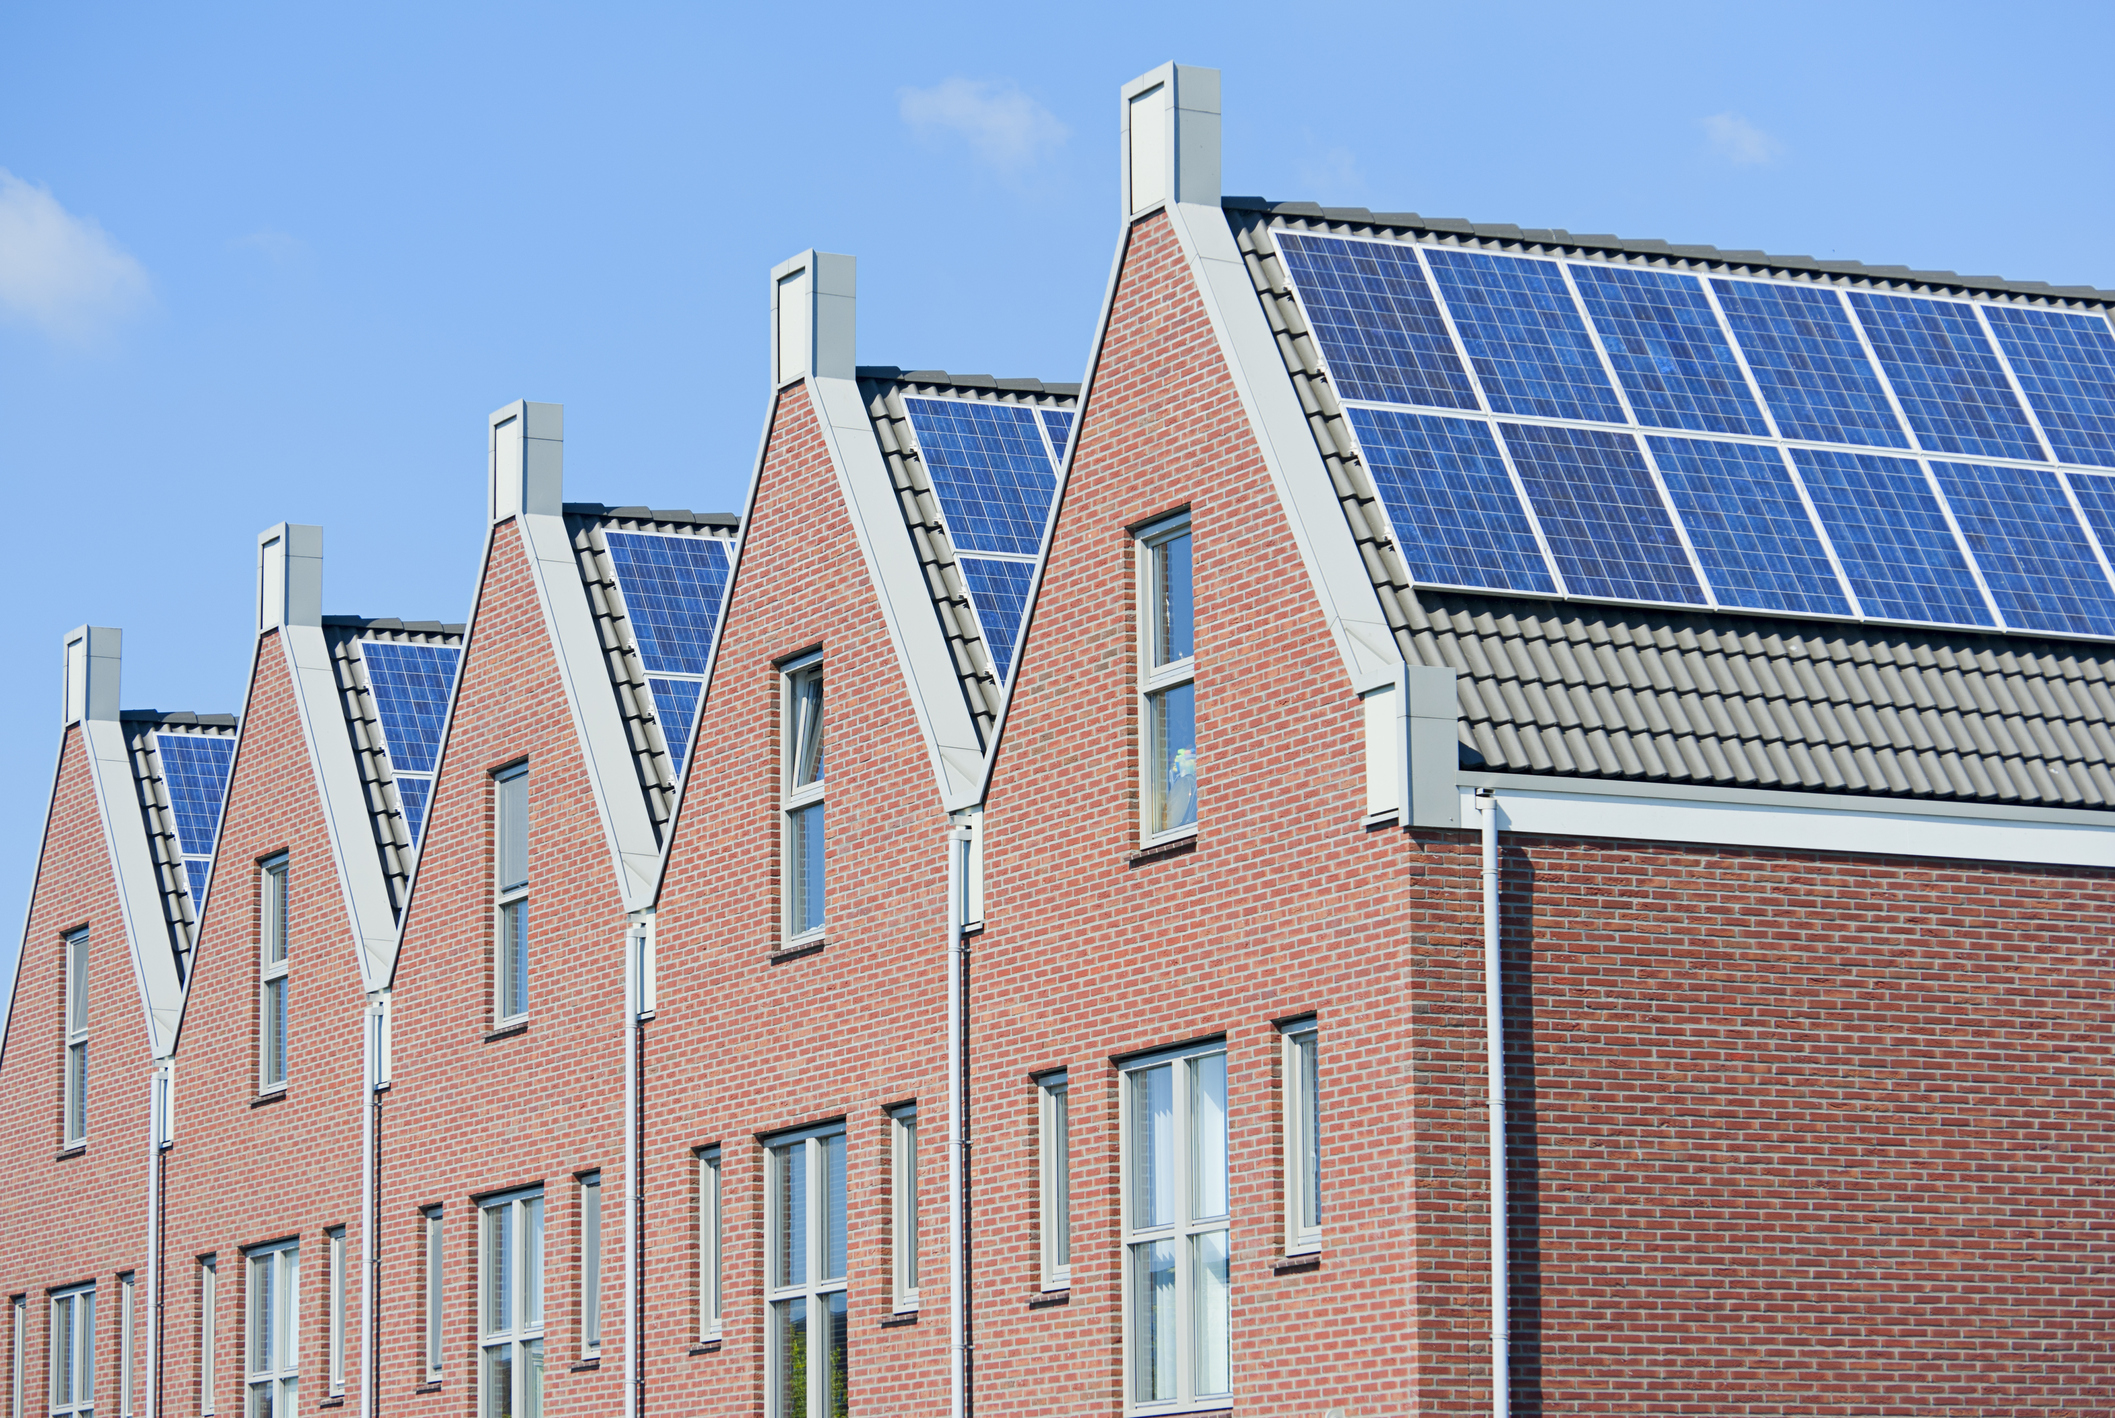 row houses with solar panels